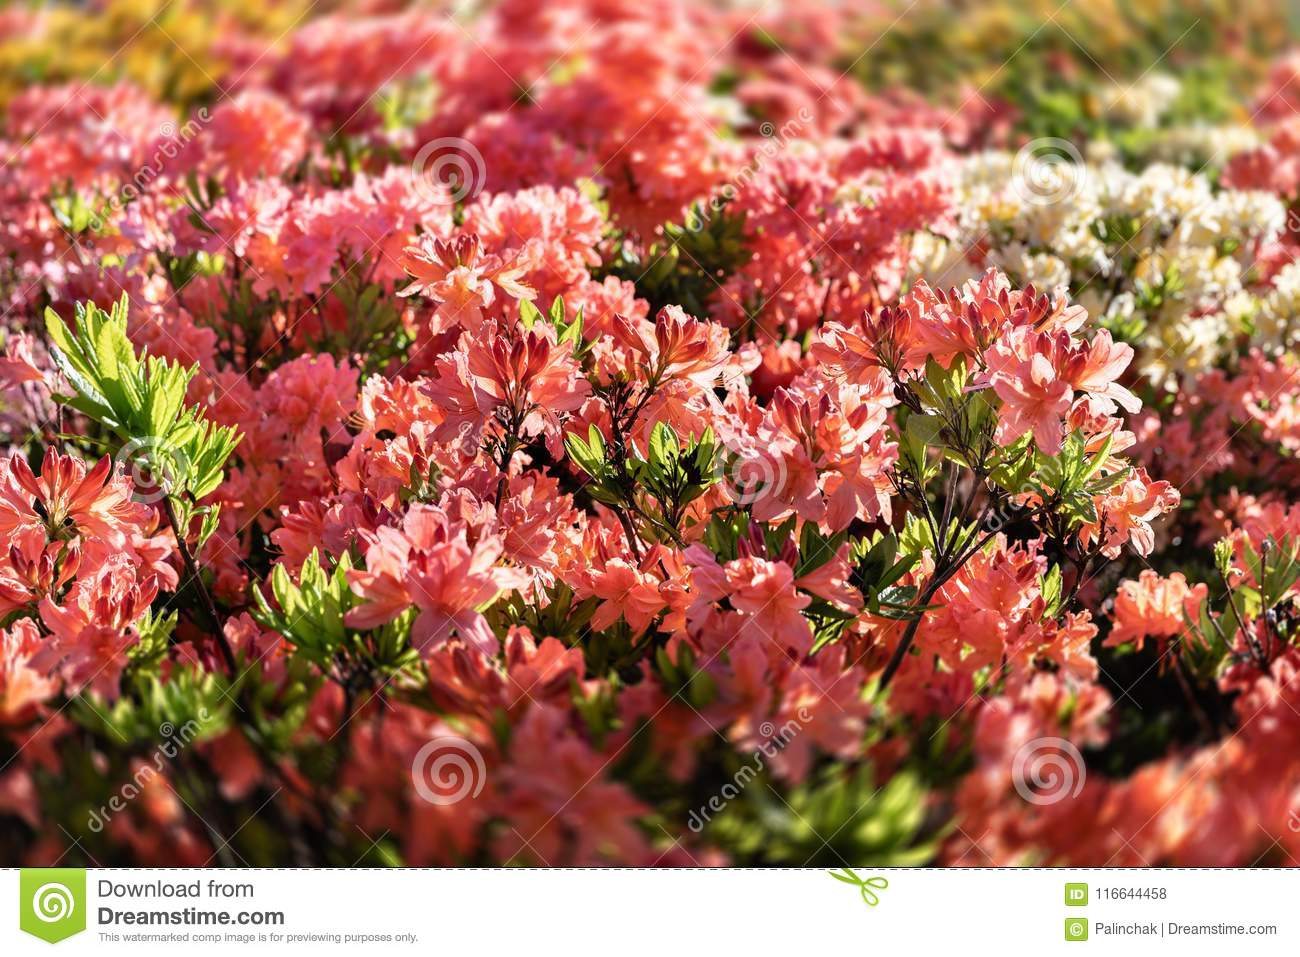 Rhododendron Plants In Bloom Stock Photo - Image of natural, botanic ...